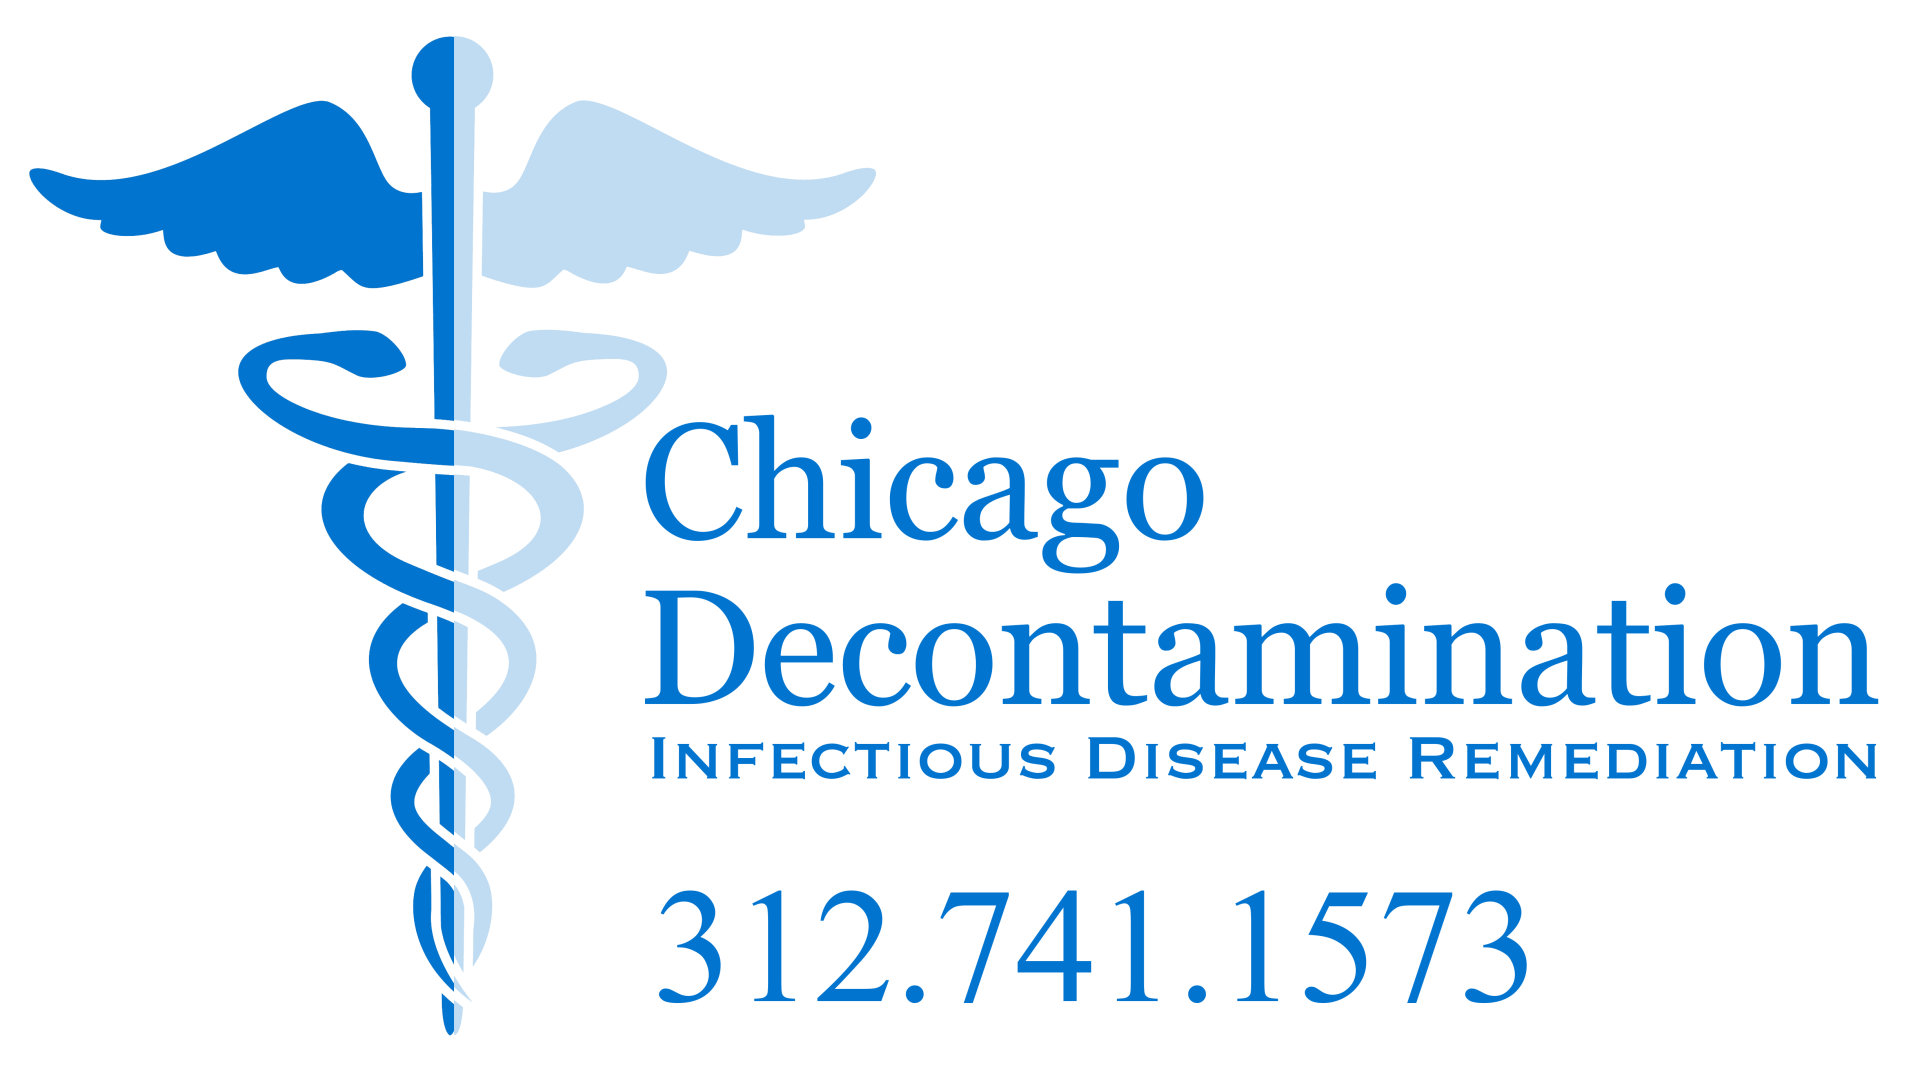 Chicago Decontamination - Infectious Disease Remediation